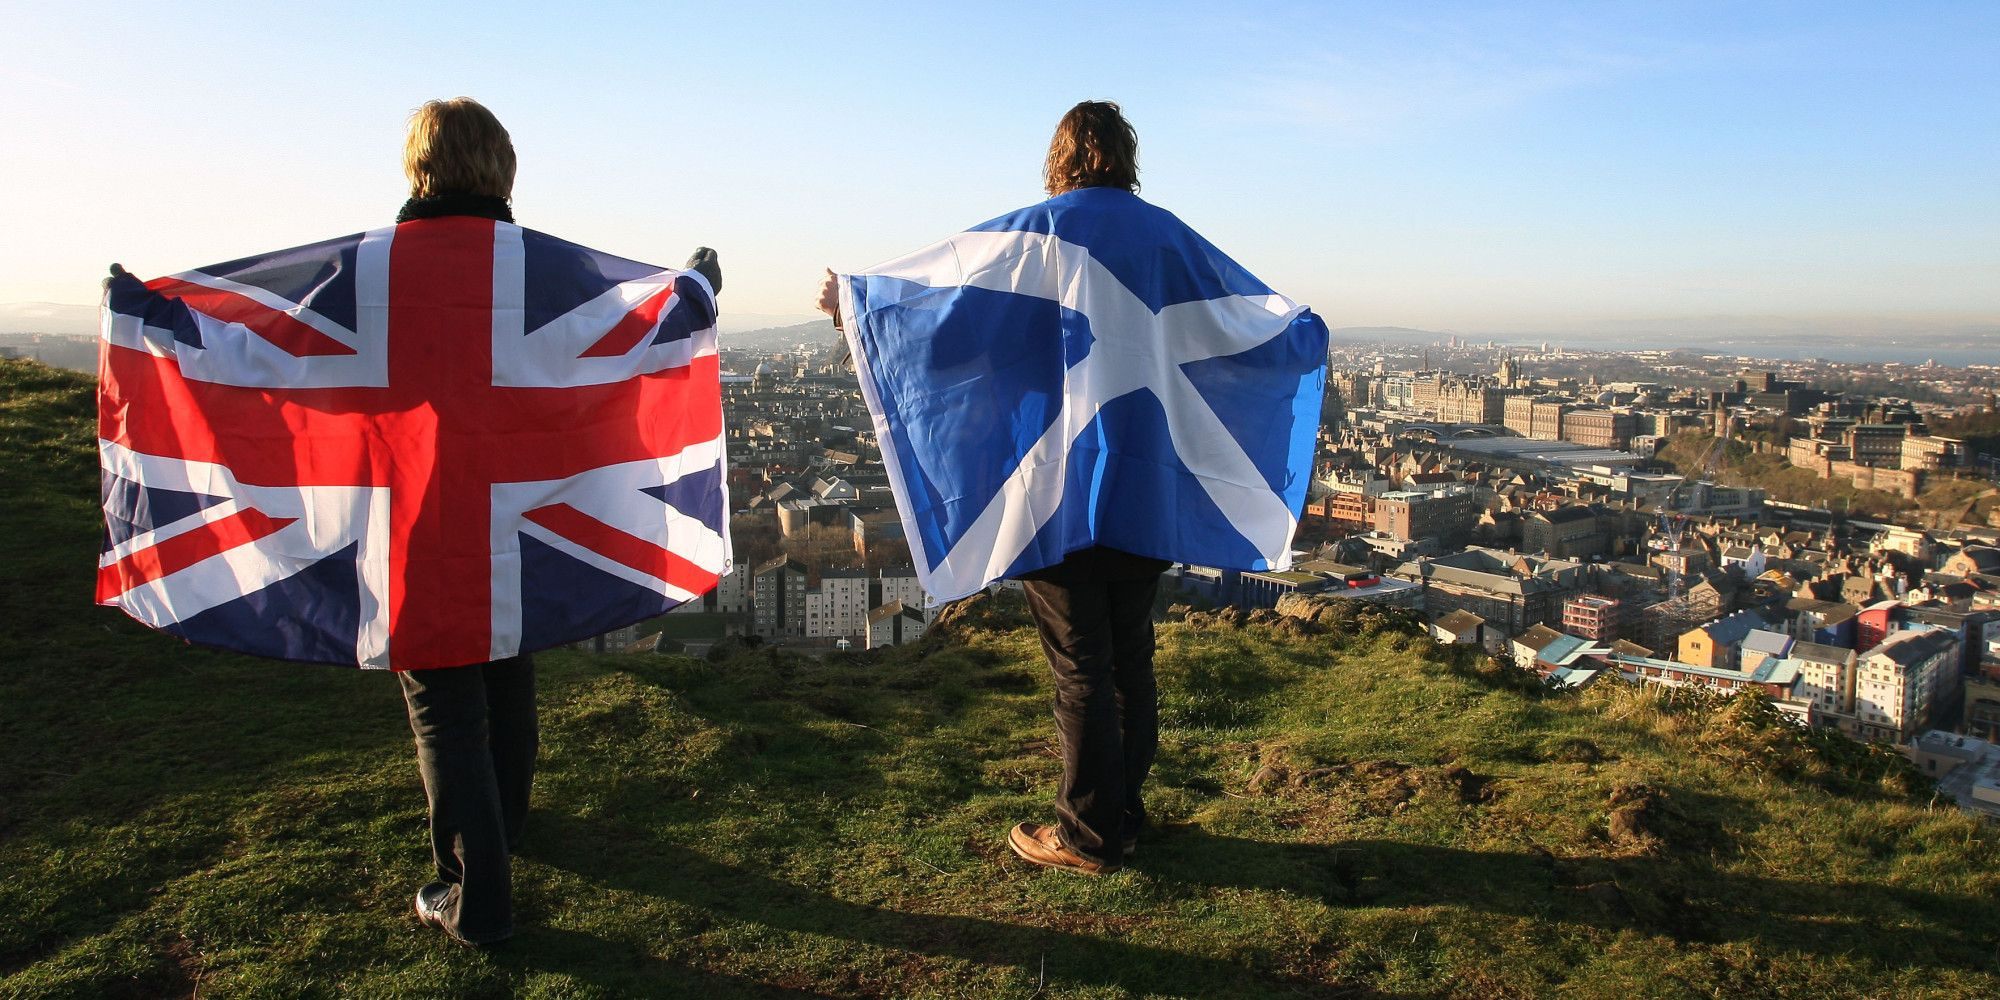 It's exactly one year since Scots voted 55% to 45% to stay part of the United Kingdom but that certainly doesn't mean the issue has been laid to rest.  The political landscape has changed dramatical